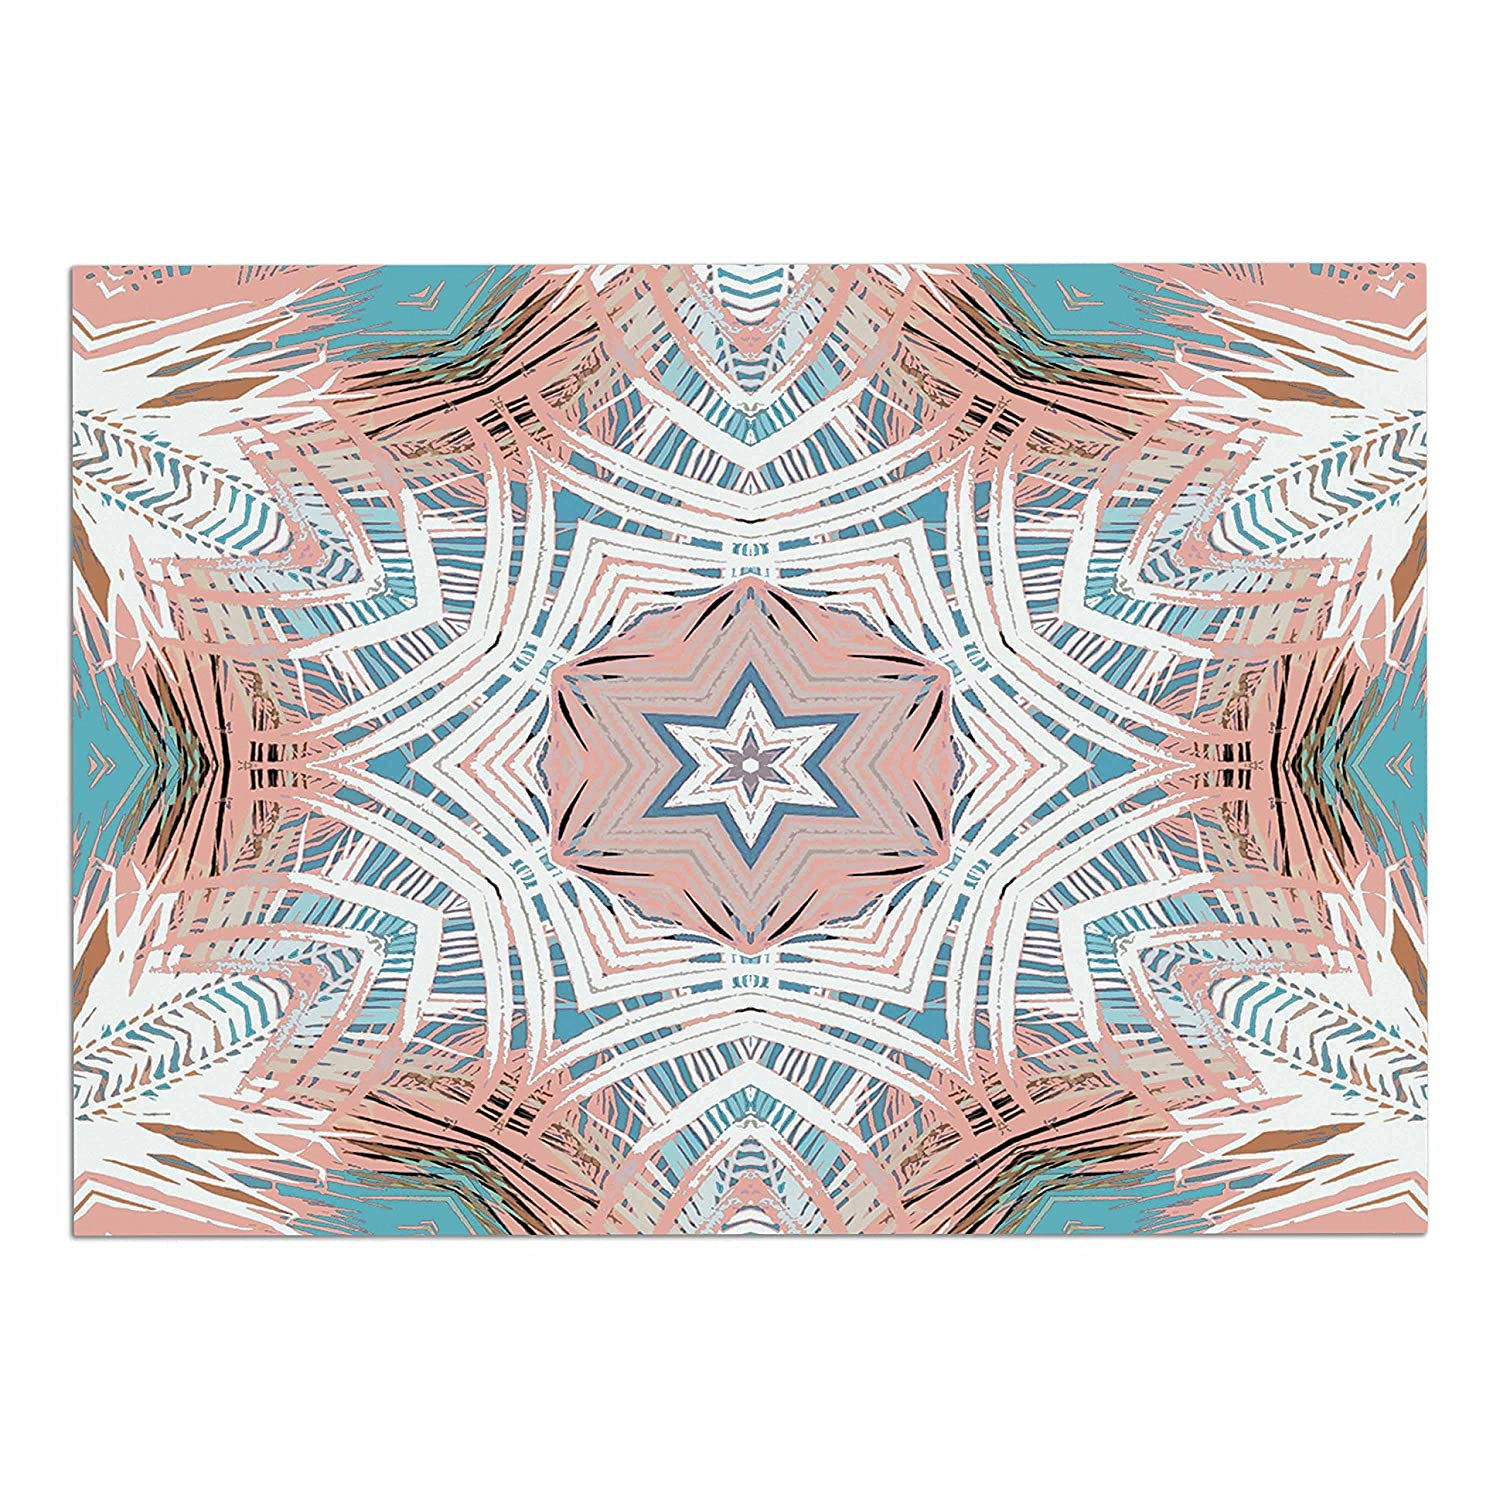 KESS InHouse AC1108ADM02 Alison Coxon Tribe Coral and Teal bluee White Dog Place Mat, 24 x15